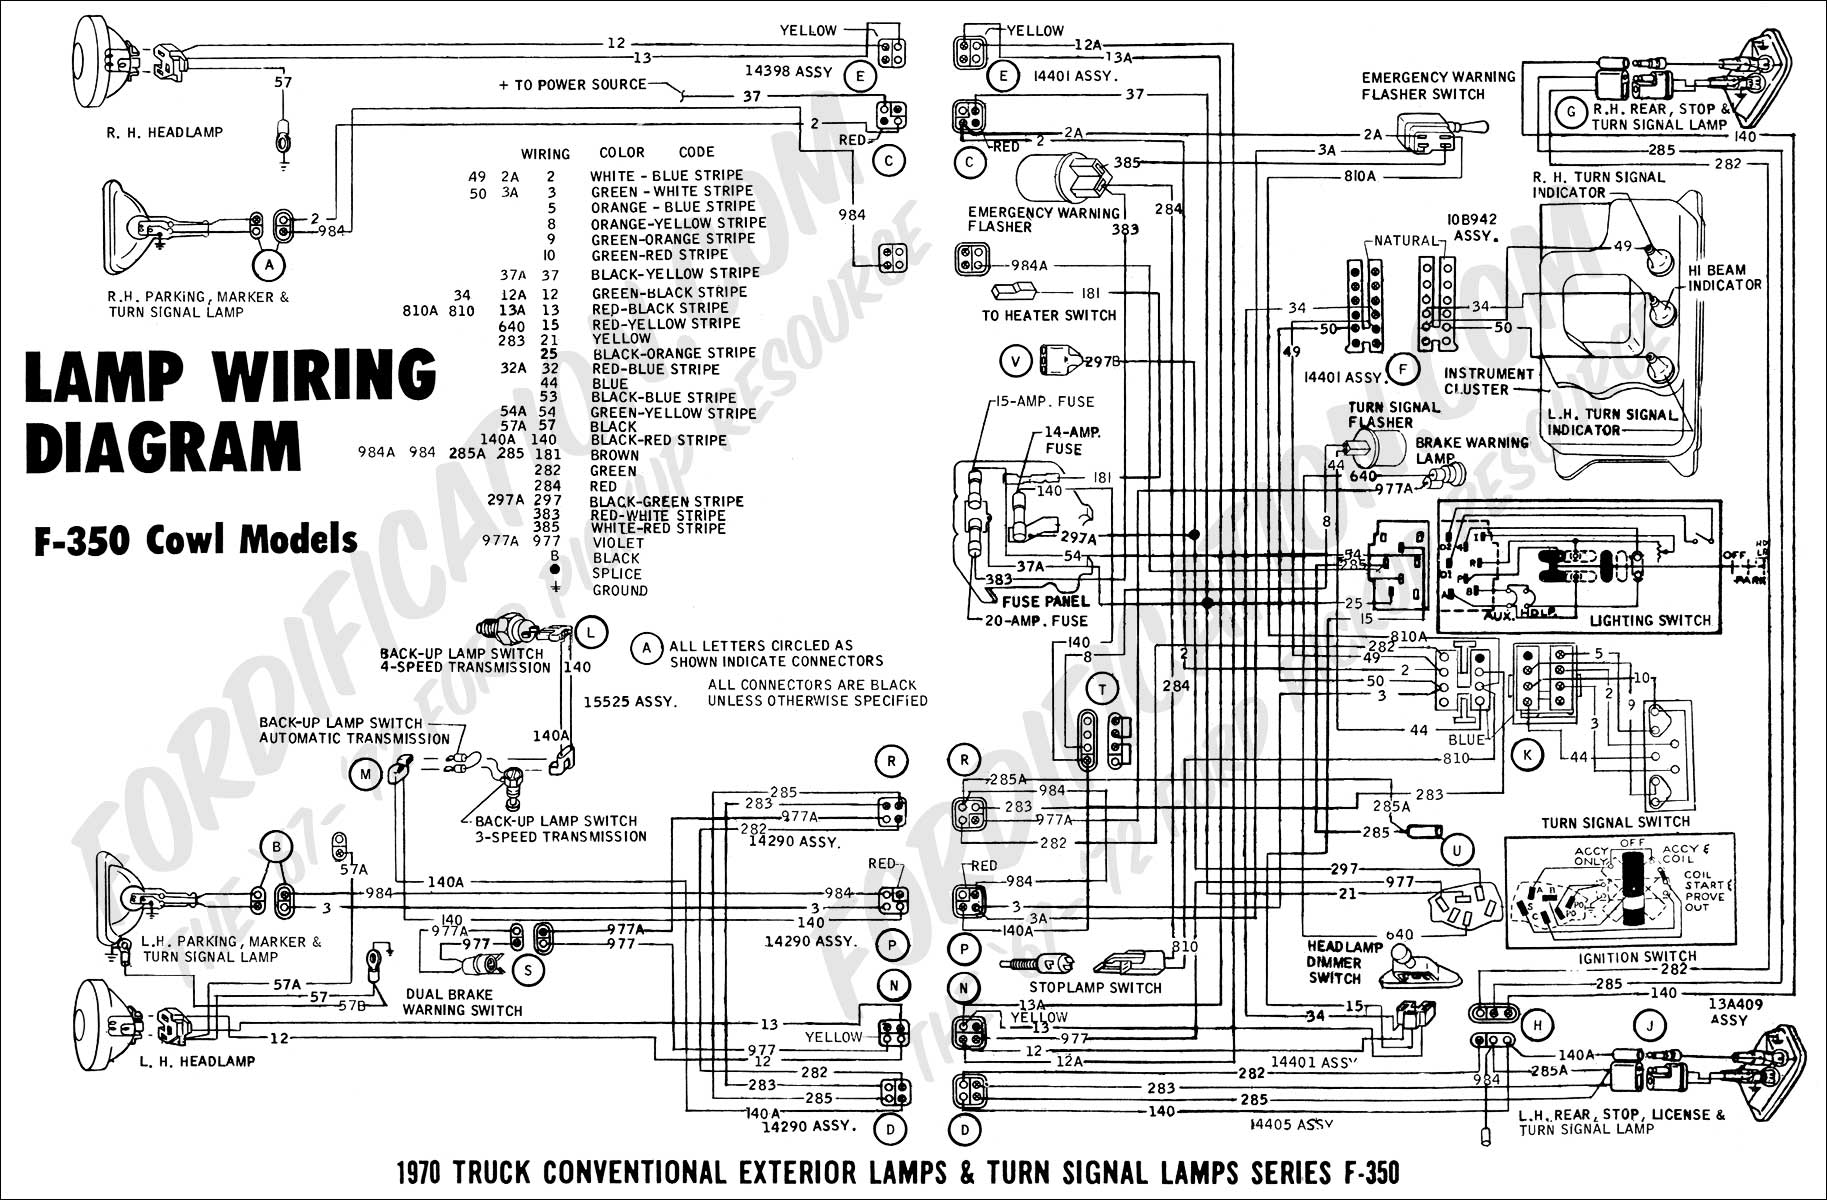 2003 F350 Parking Light Wiring Diagram - Trailer Brake Wiring Harness  Diagram for Wiring Diagram SchematicsWiring Diagram Schematics